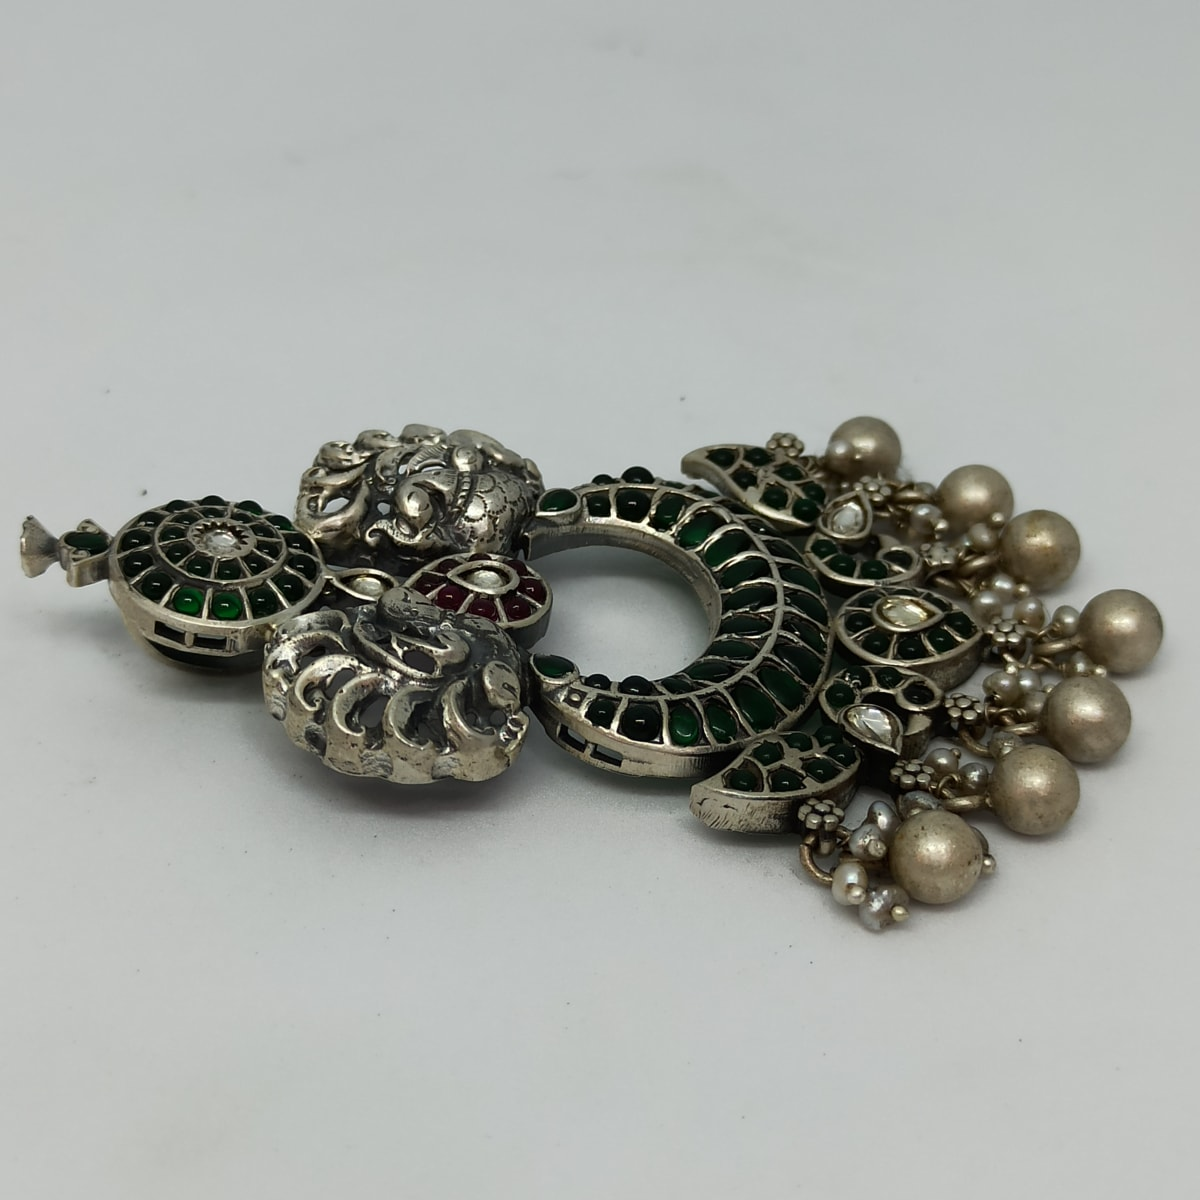 Peacock Pendant For Her